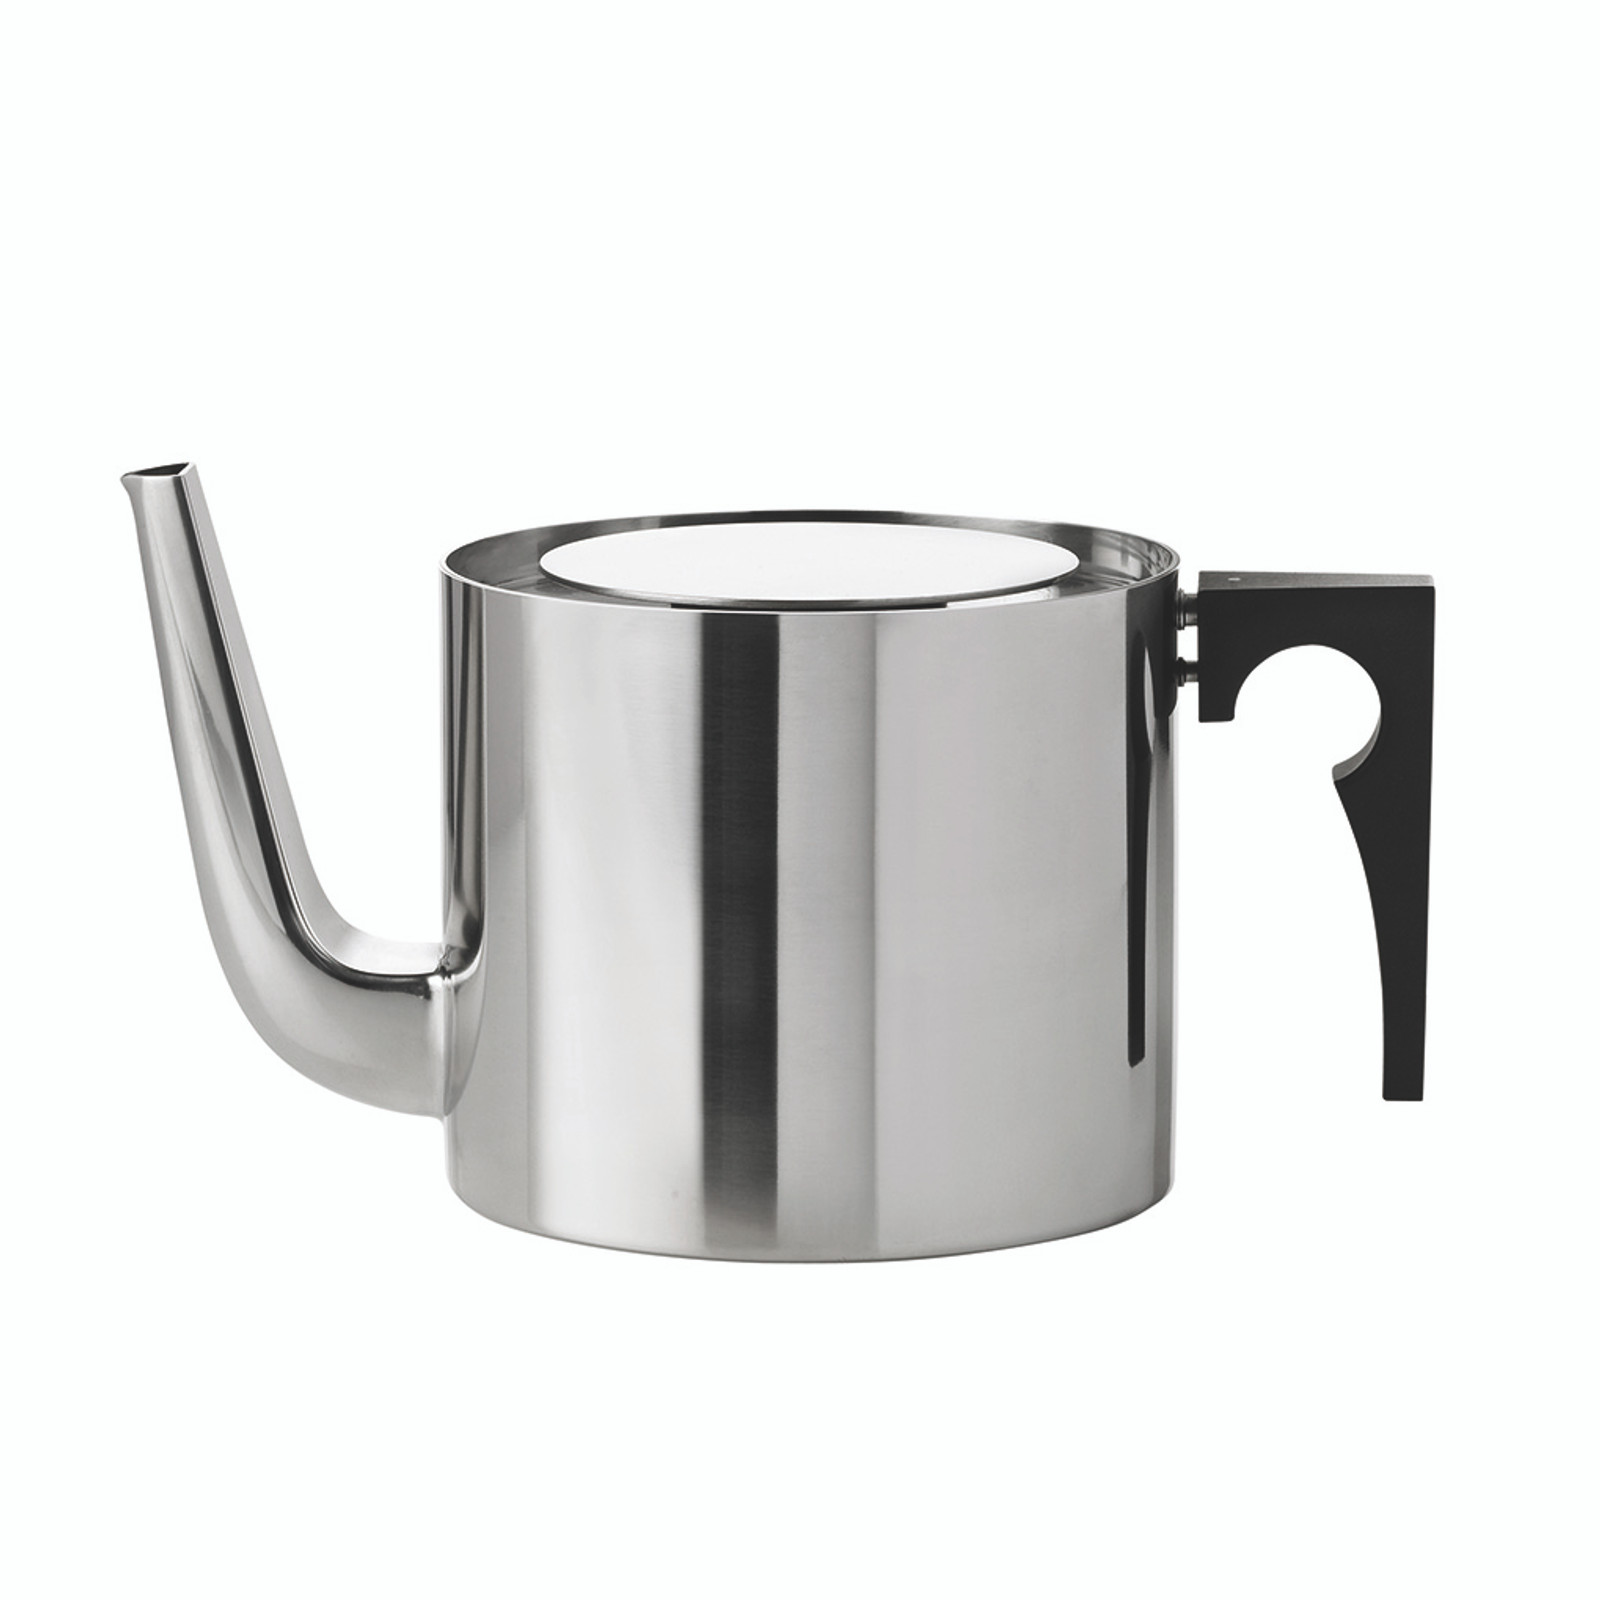 Stelton AJ Tea Pot designed by Arne Jacobsen